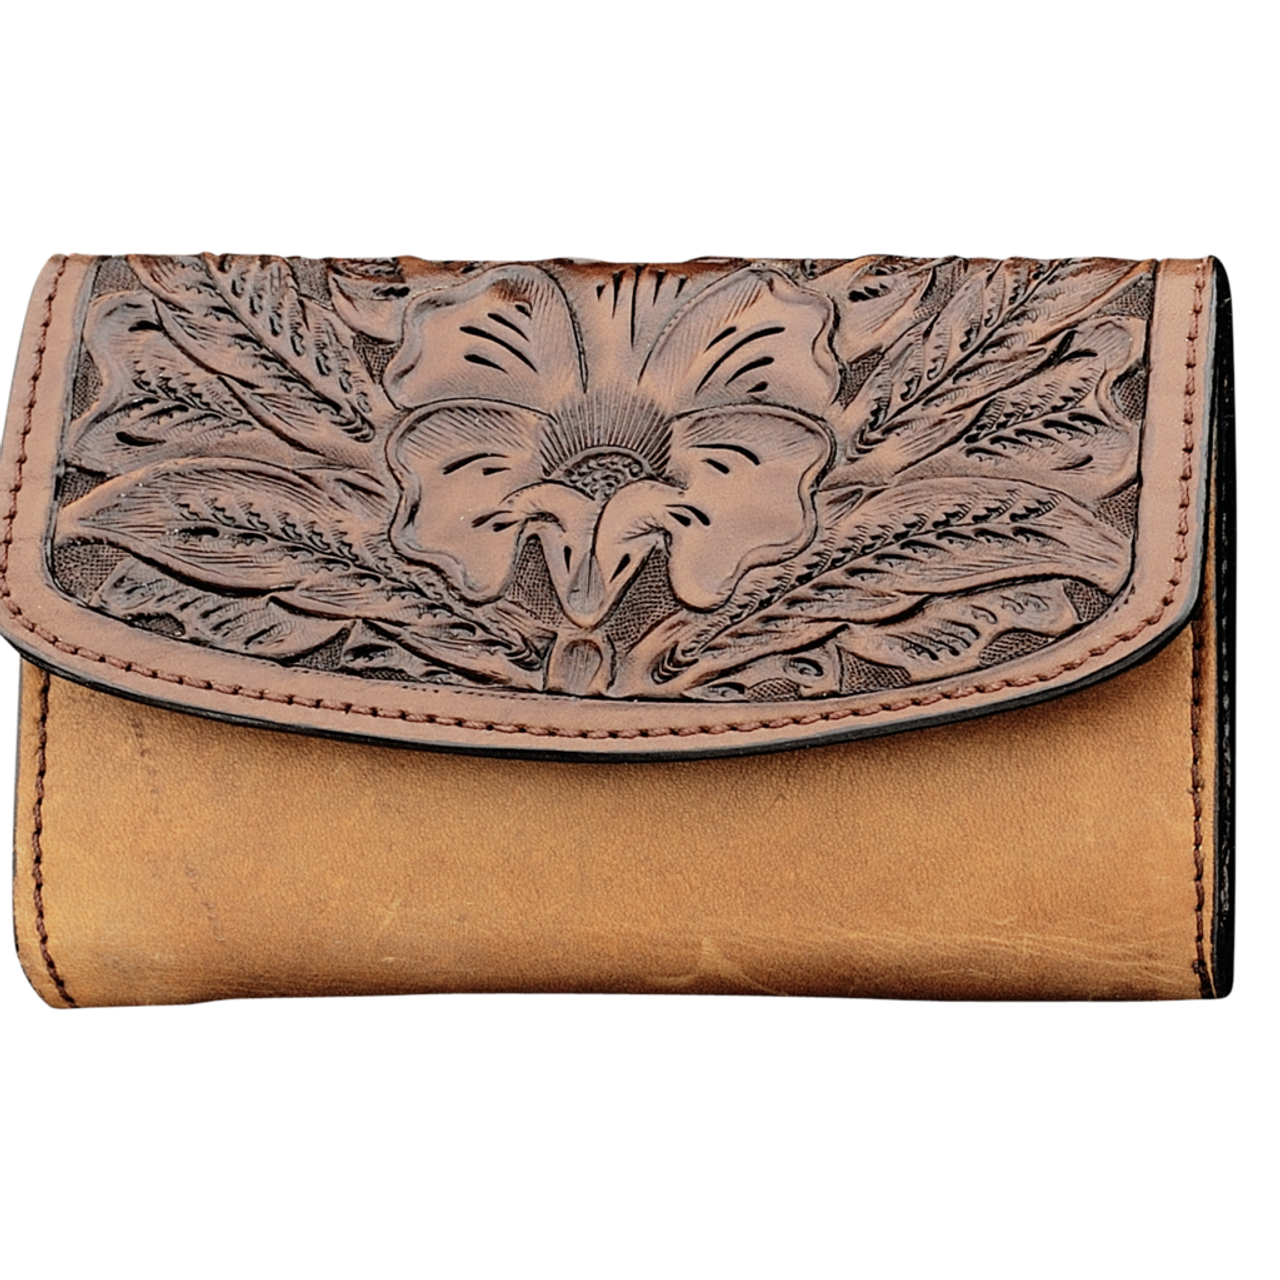 56ba0124533a Vogt Womens Accessories - Purses - Smooth Scarred Russet Saddle Brown  Leather Clutch Purse